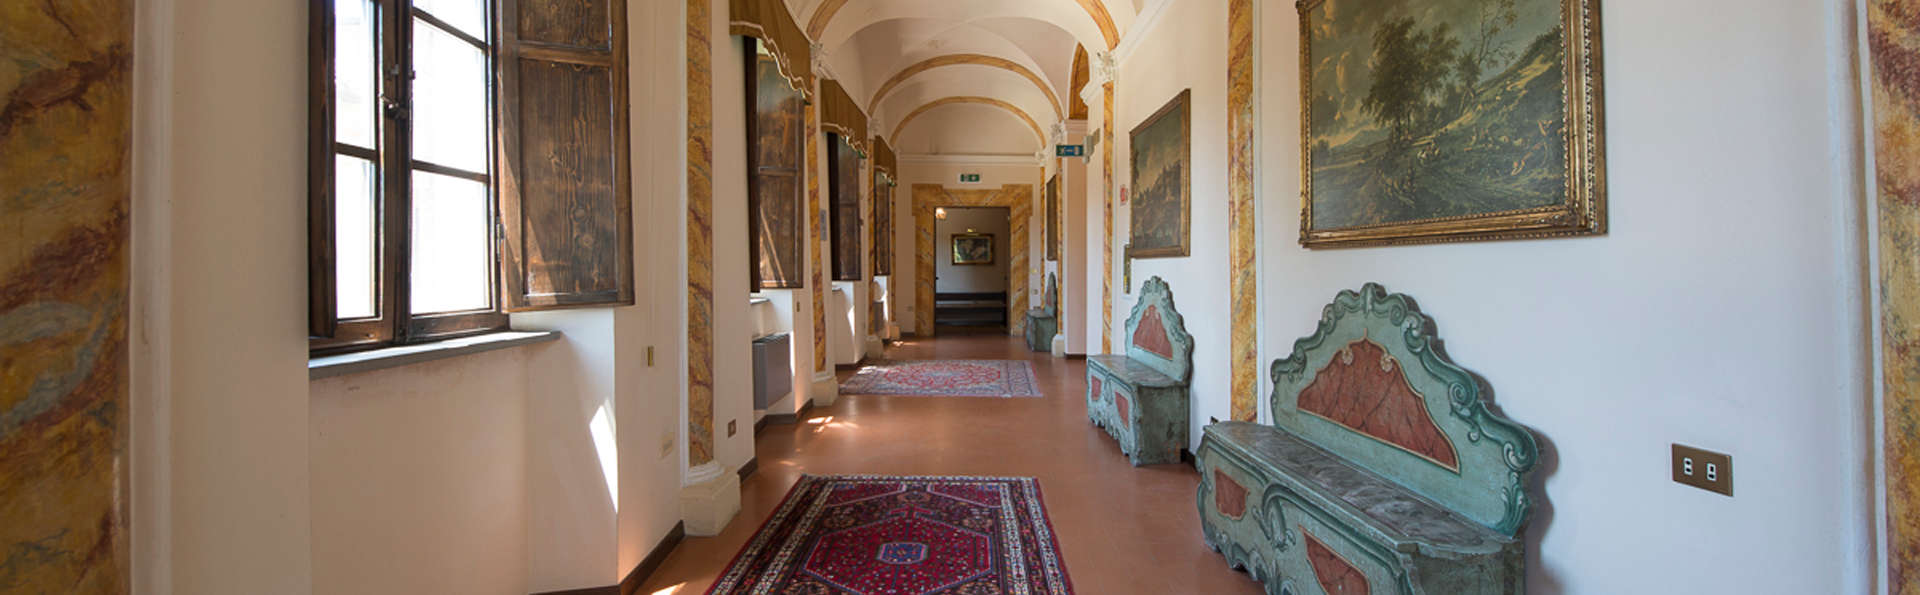 Hotel Villa Montegranelli - edit_hall2.jpg